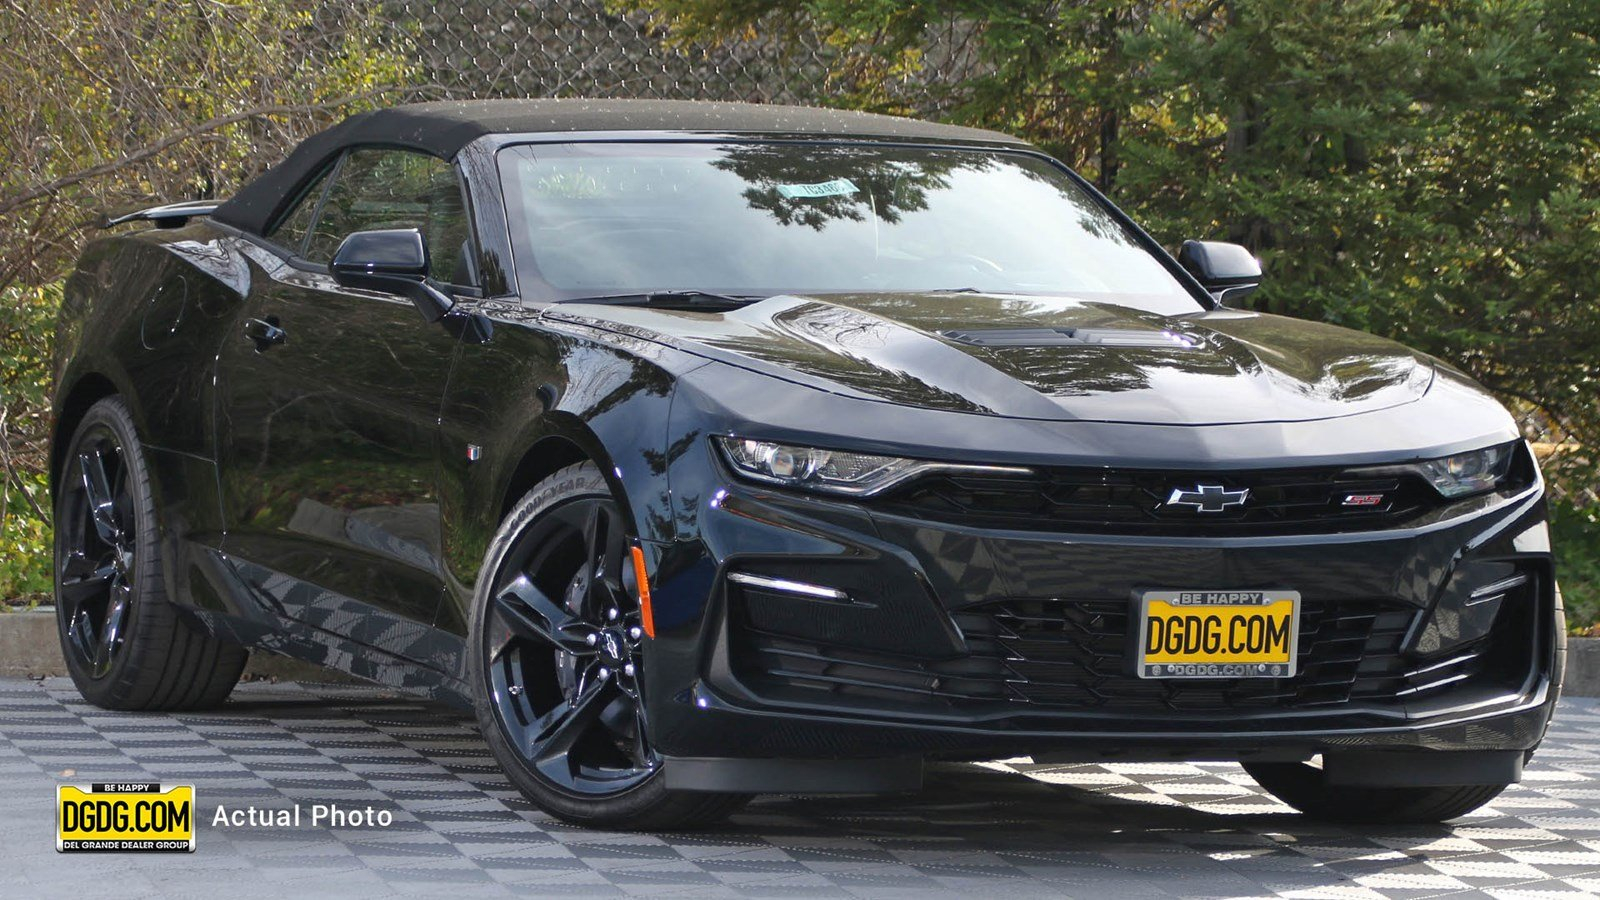 2020 Chevrolet Camaro 2Ss Rwd Convertible 2022 Chevy Camaro Lease, Price, Pictures